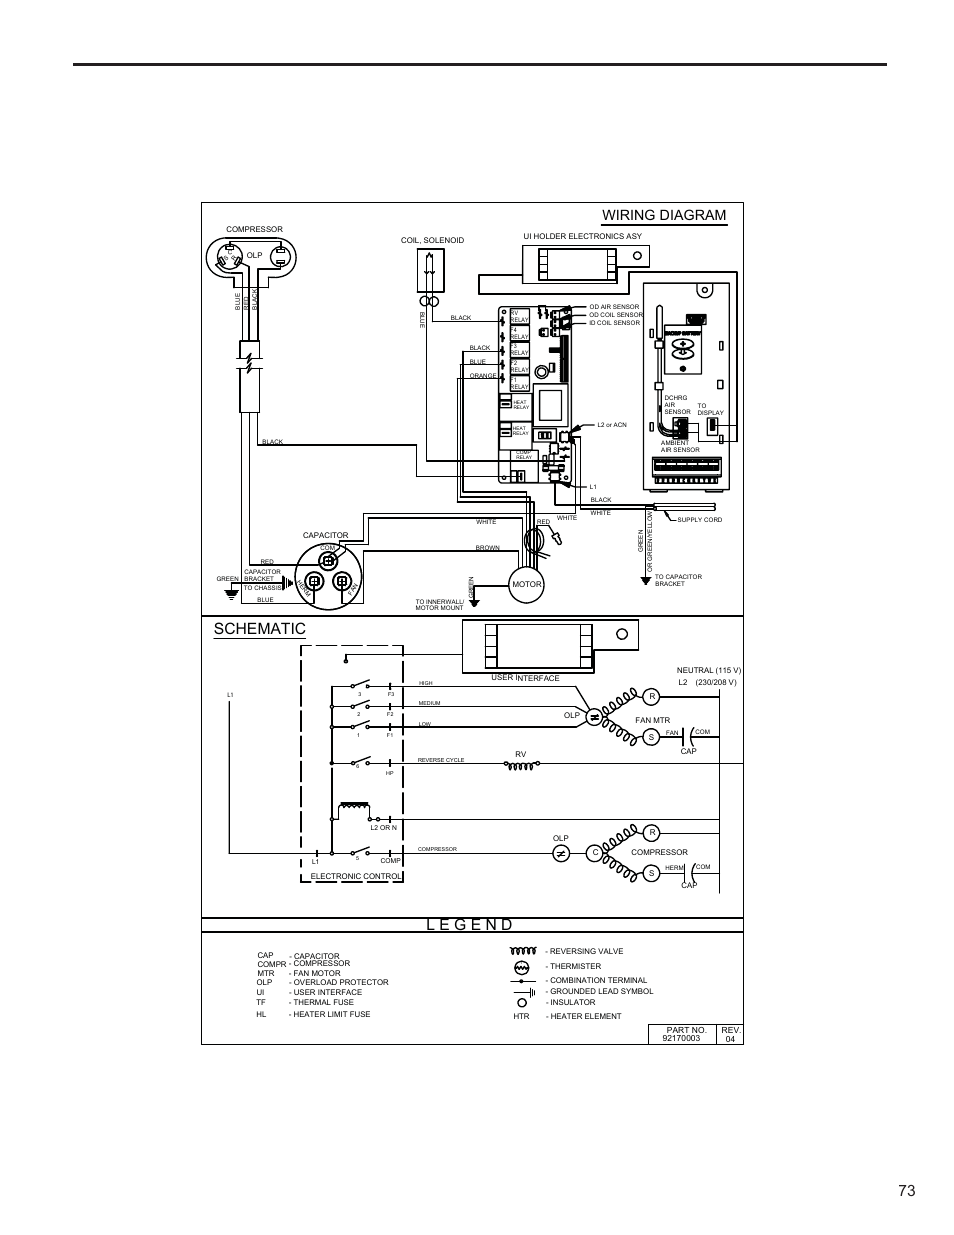 Schematic     Wiring       diagram      Friedrich KUHL R410A User